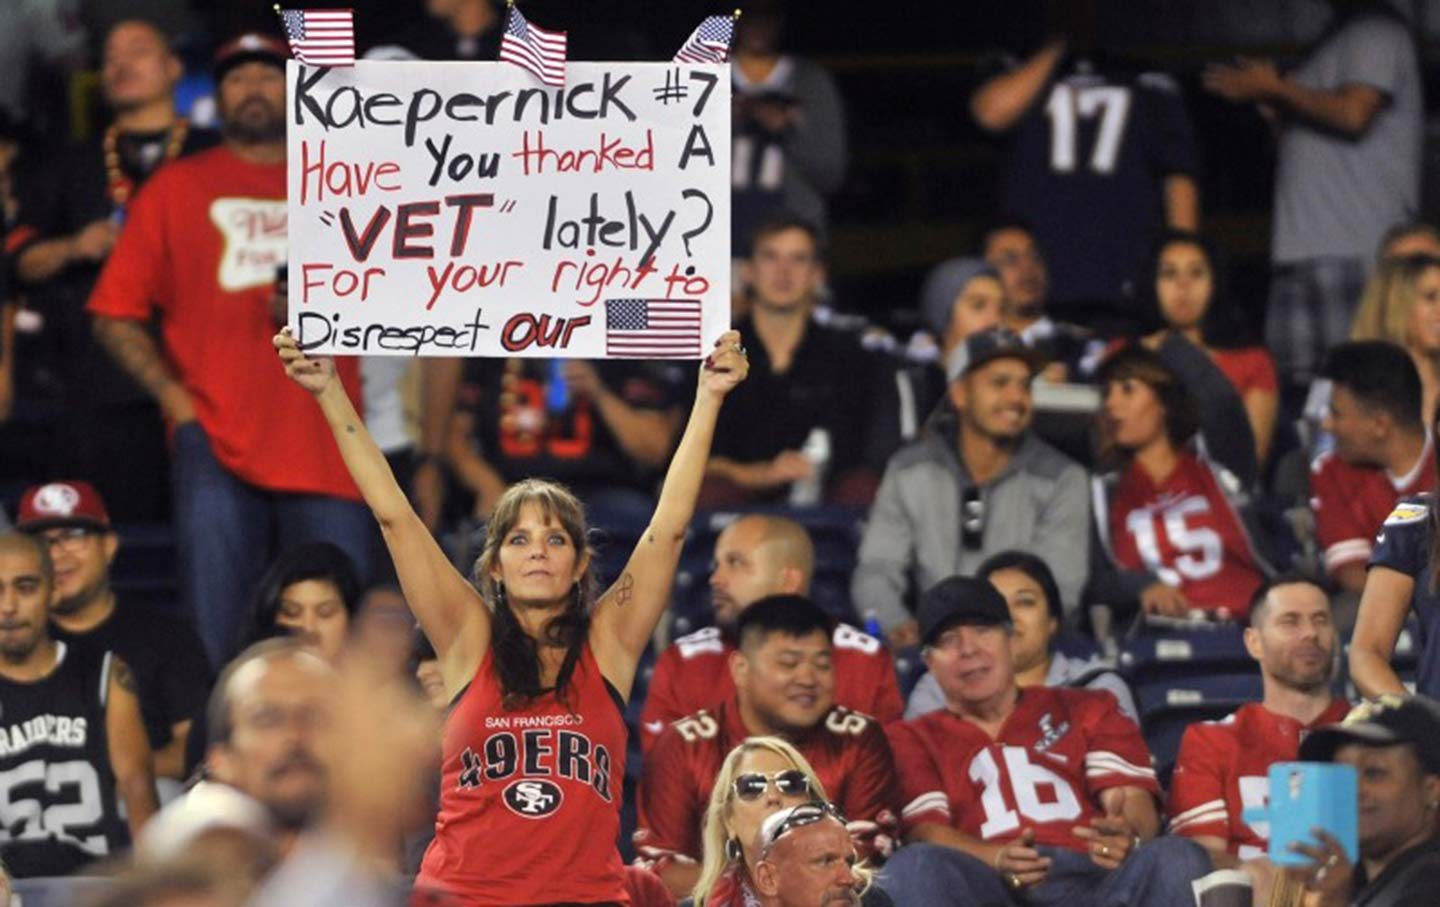 colin_kaepernick_vet_protest_ap colin kaepernick's protest has nothing to do with the military the